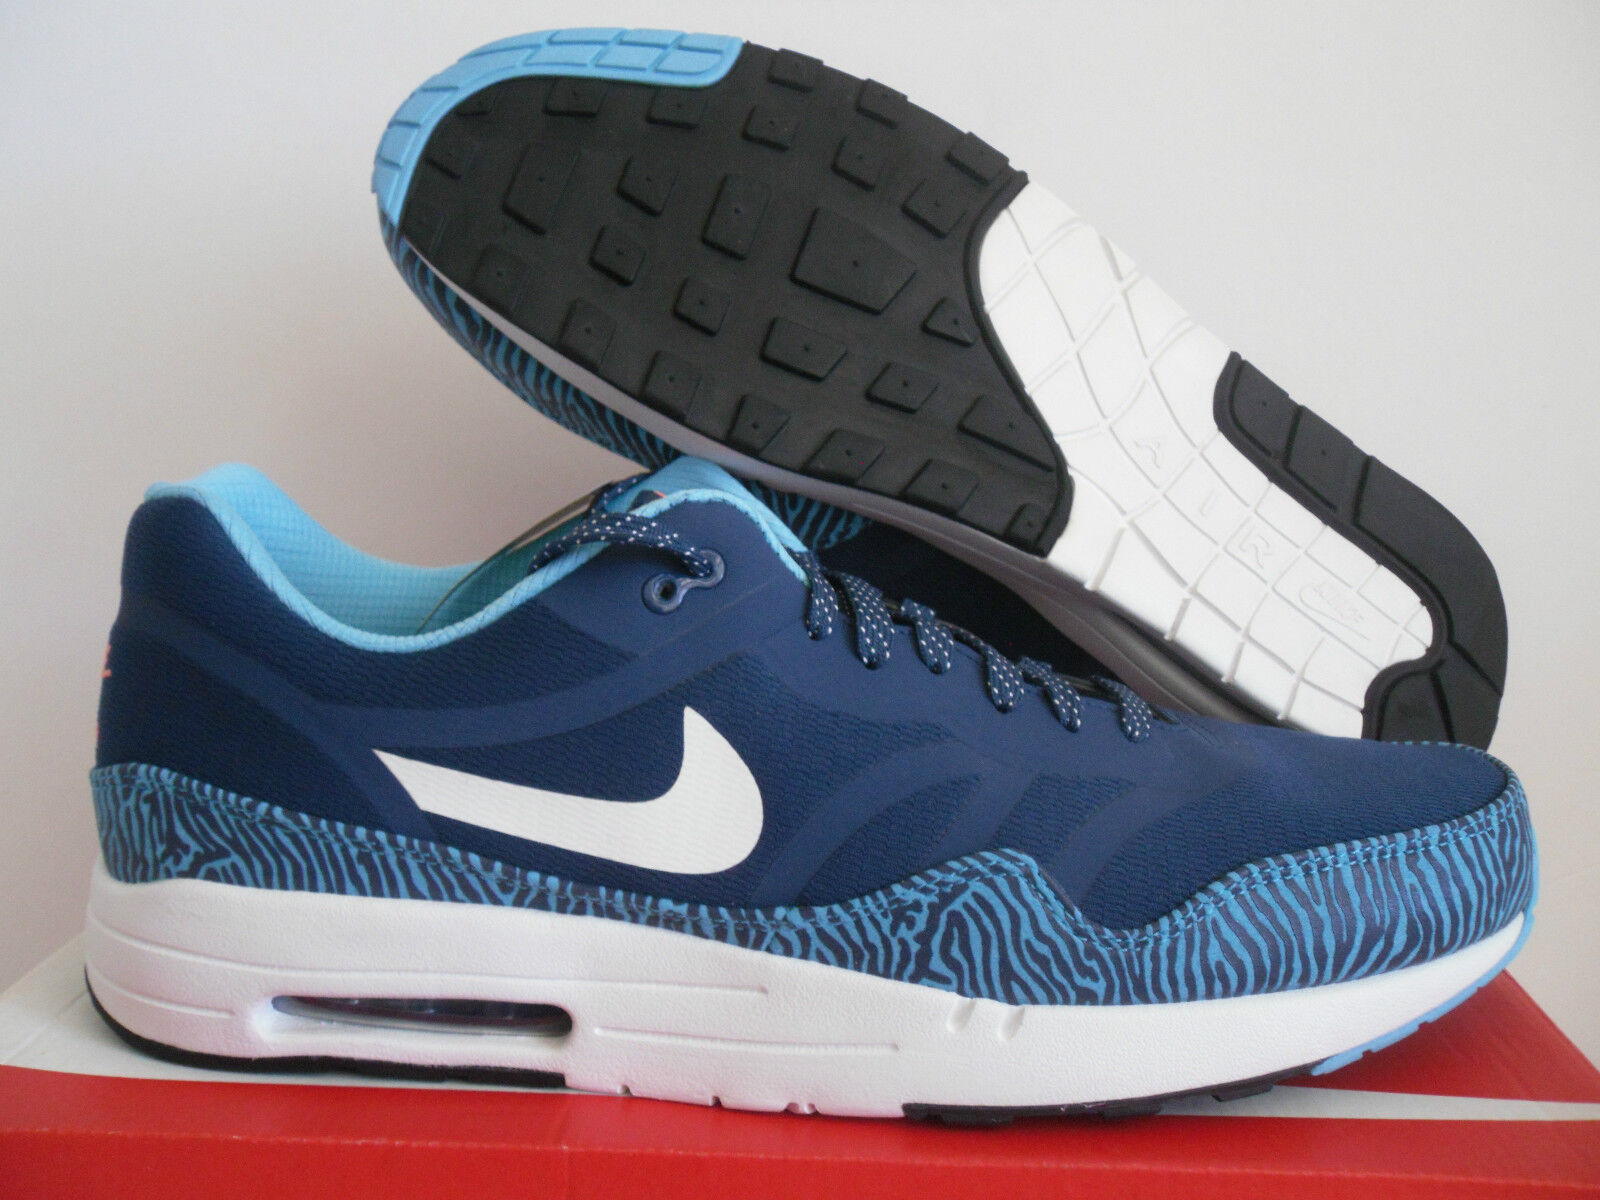 MENS NIKE AIR MAX BLUE-WHITE-BLACK 1 PREMIUM TAPE BLUE-WHITE-BLACK MAX SZ 13 [599514-410] a2cc63